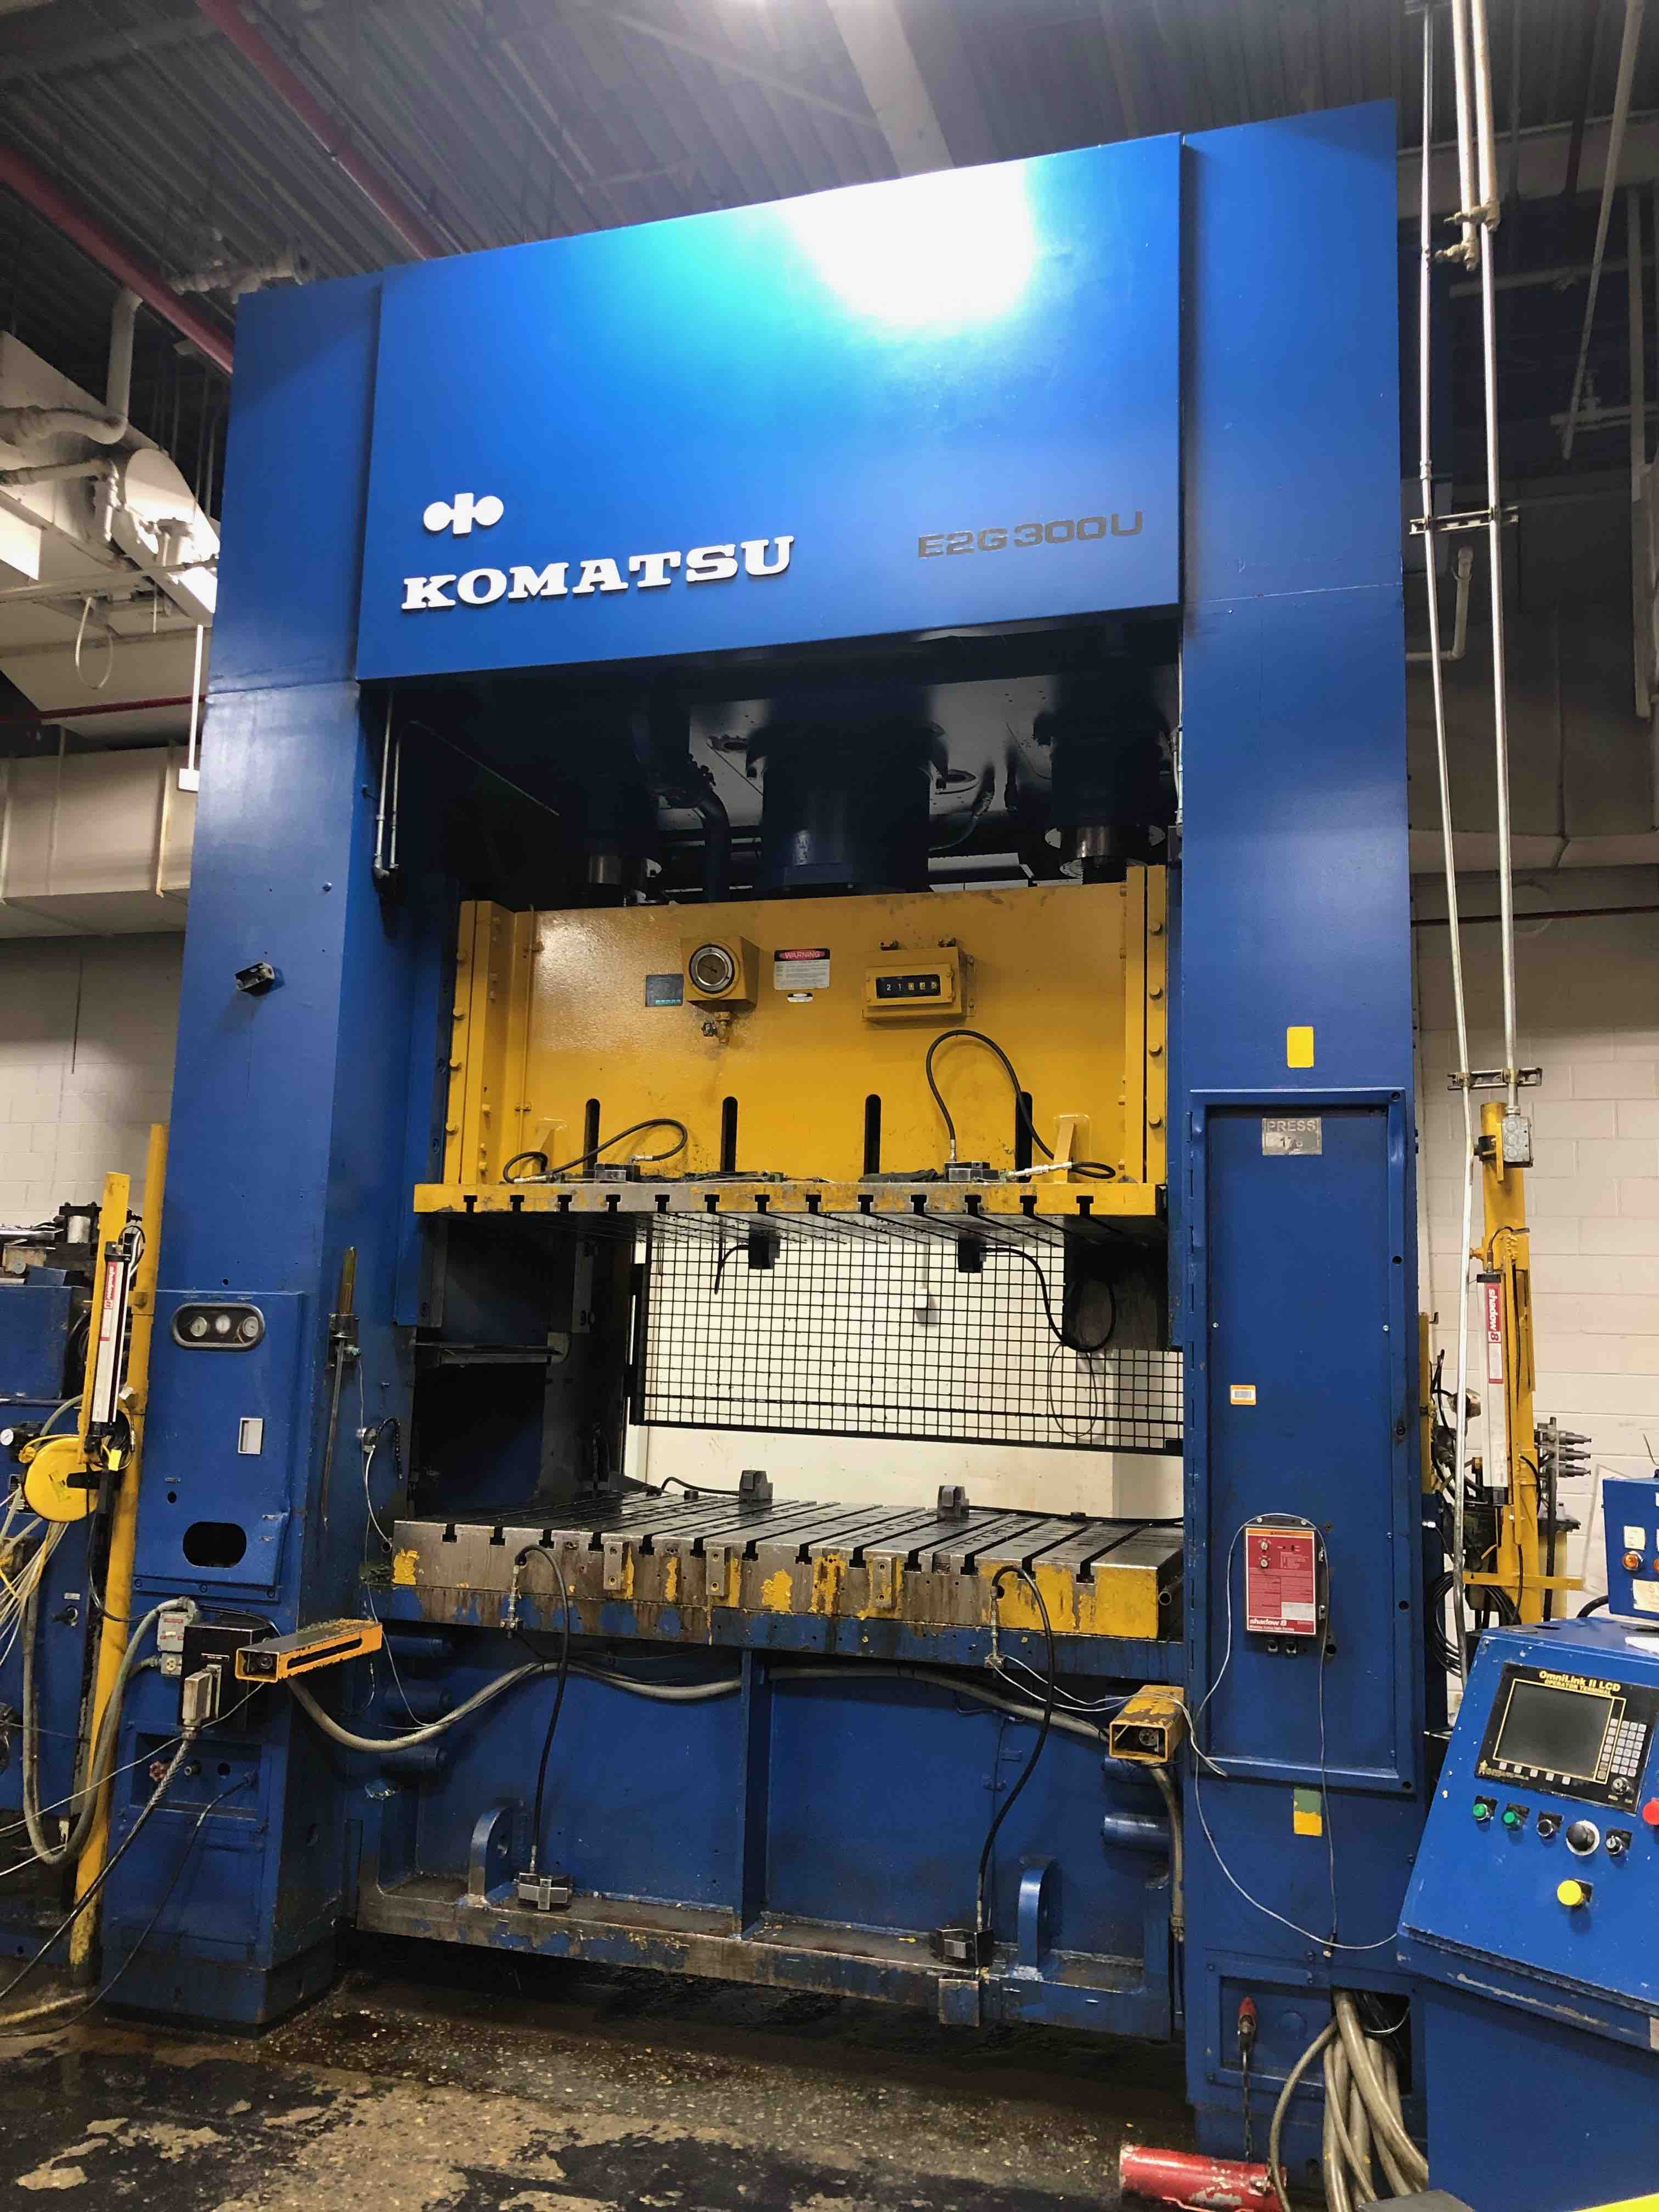 KOMATSU 300 TON STRAIGHT SIDE PRESS, STOCK# 13976J